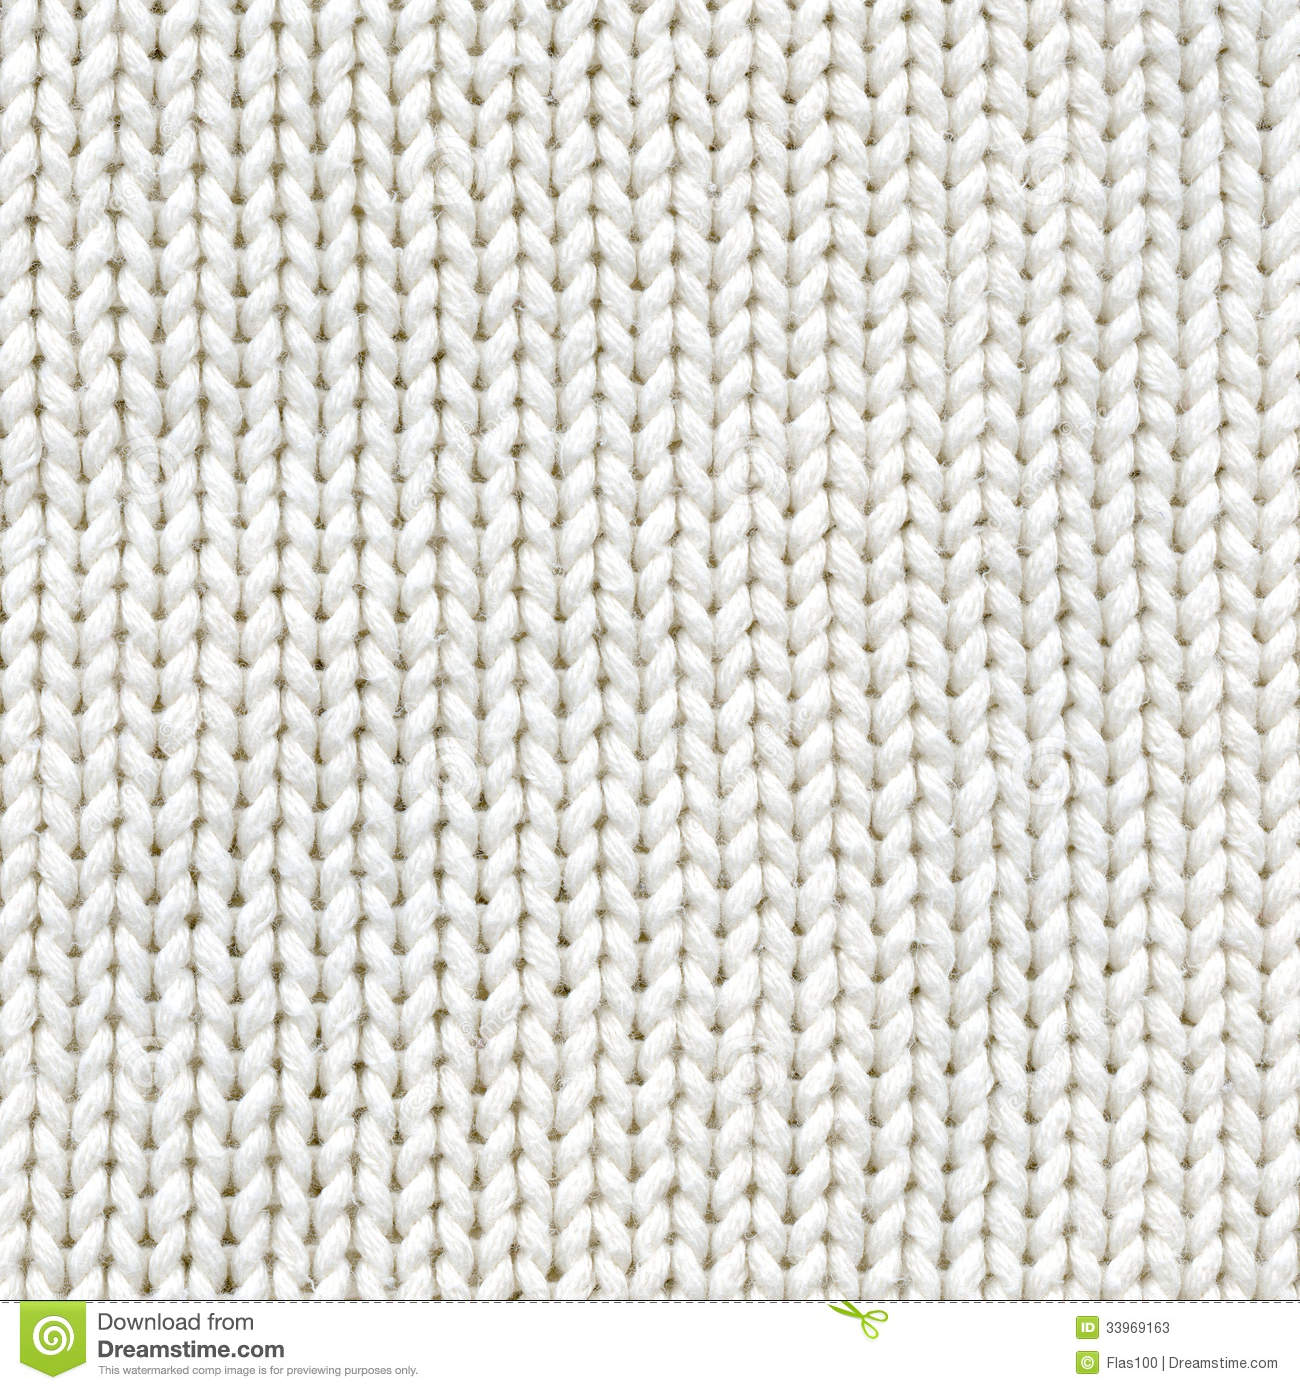 Woven fabric texture stock image. Image of space, cotton - 33969163 for White Woven Fabric Texture  195sfw